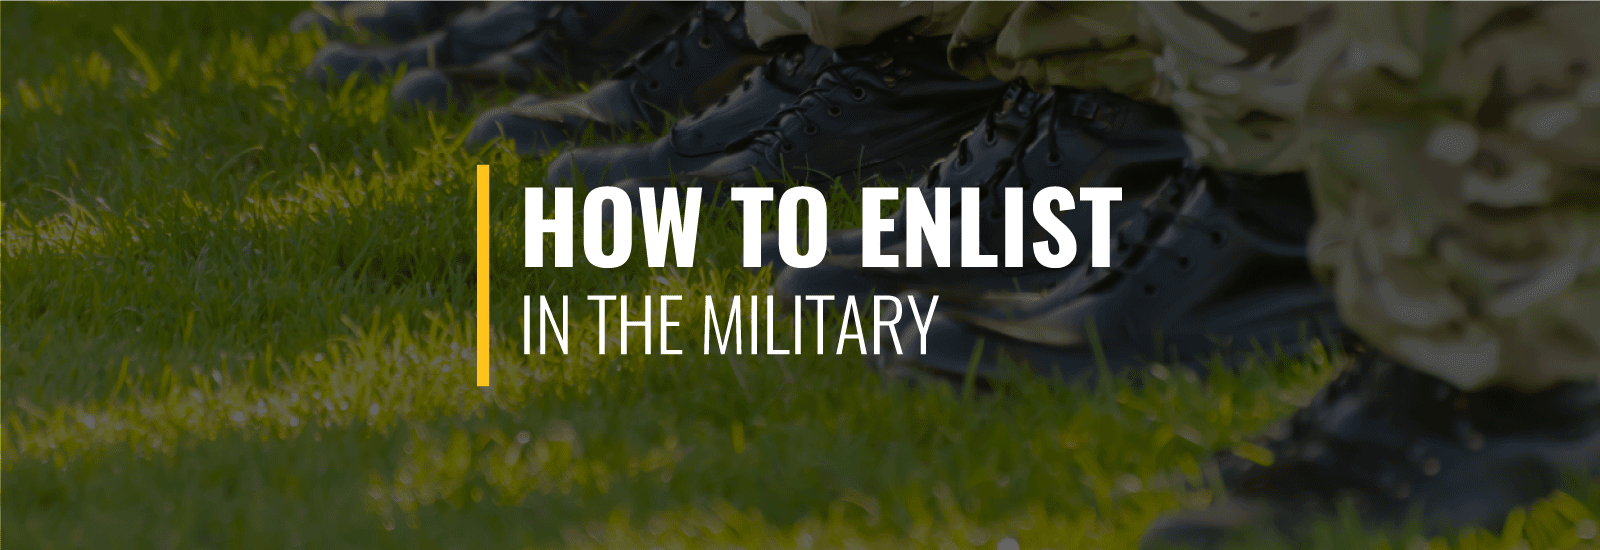 How to Enlist in the Military